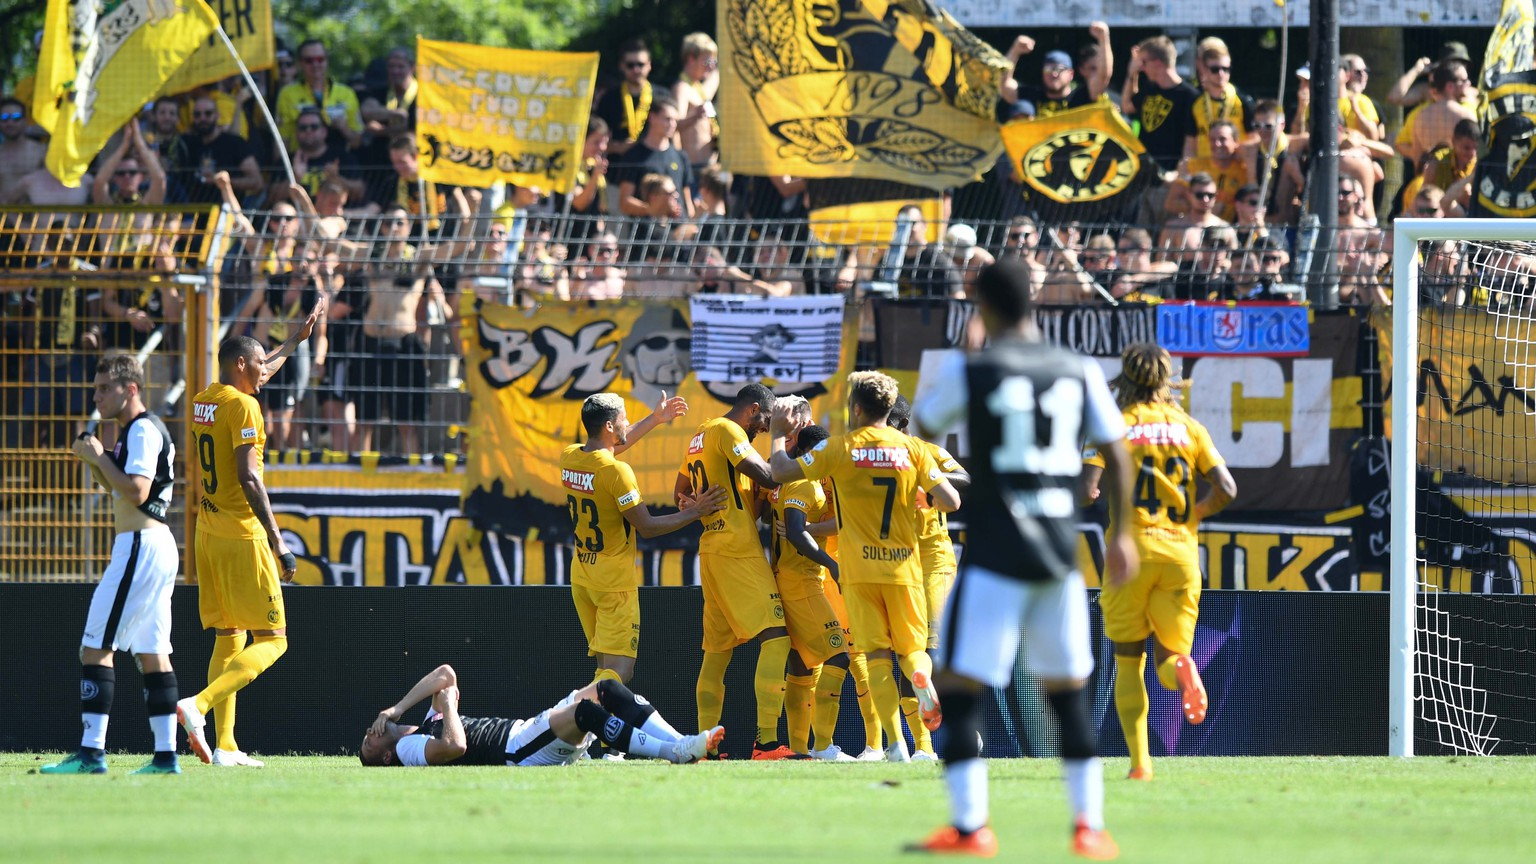 Young Boys's players celebrate the 0-1 during the Super League soccer match FC Lugano against BSC Young Boys, at the Cornaredo stadium in Lugano, Sunday, July 29, 2018. (KEYSTONE/Ti-Press/Davide Agosta)